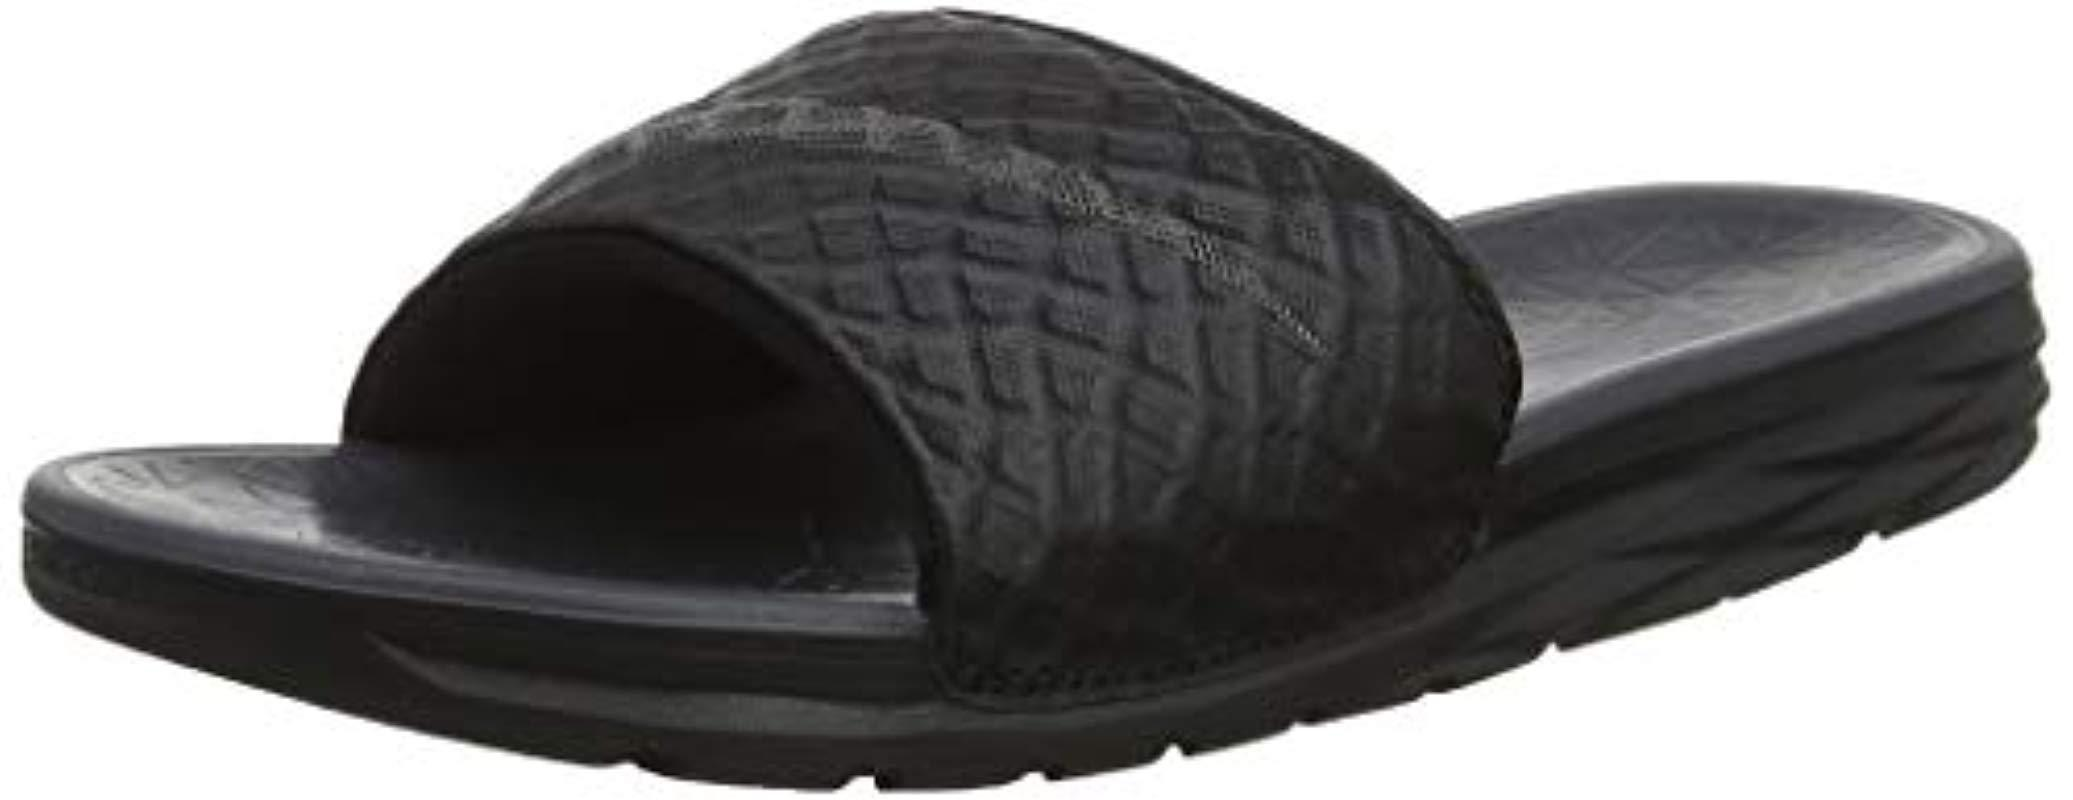 official photos 9cb41 2b338 Lyst - Nike  s Benassi Solarsoft Slide Beach   Pool Shoes in Black .